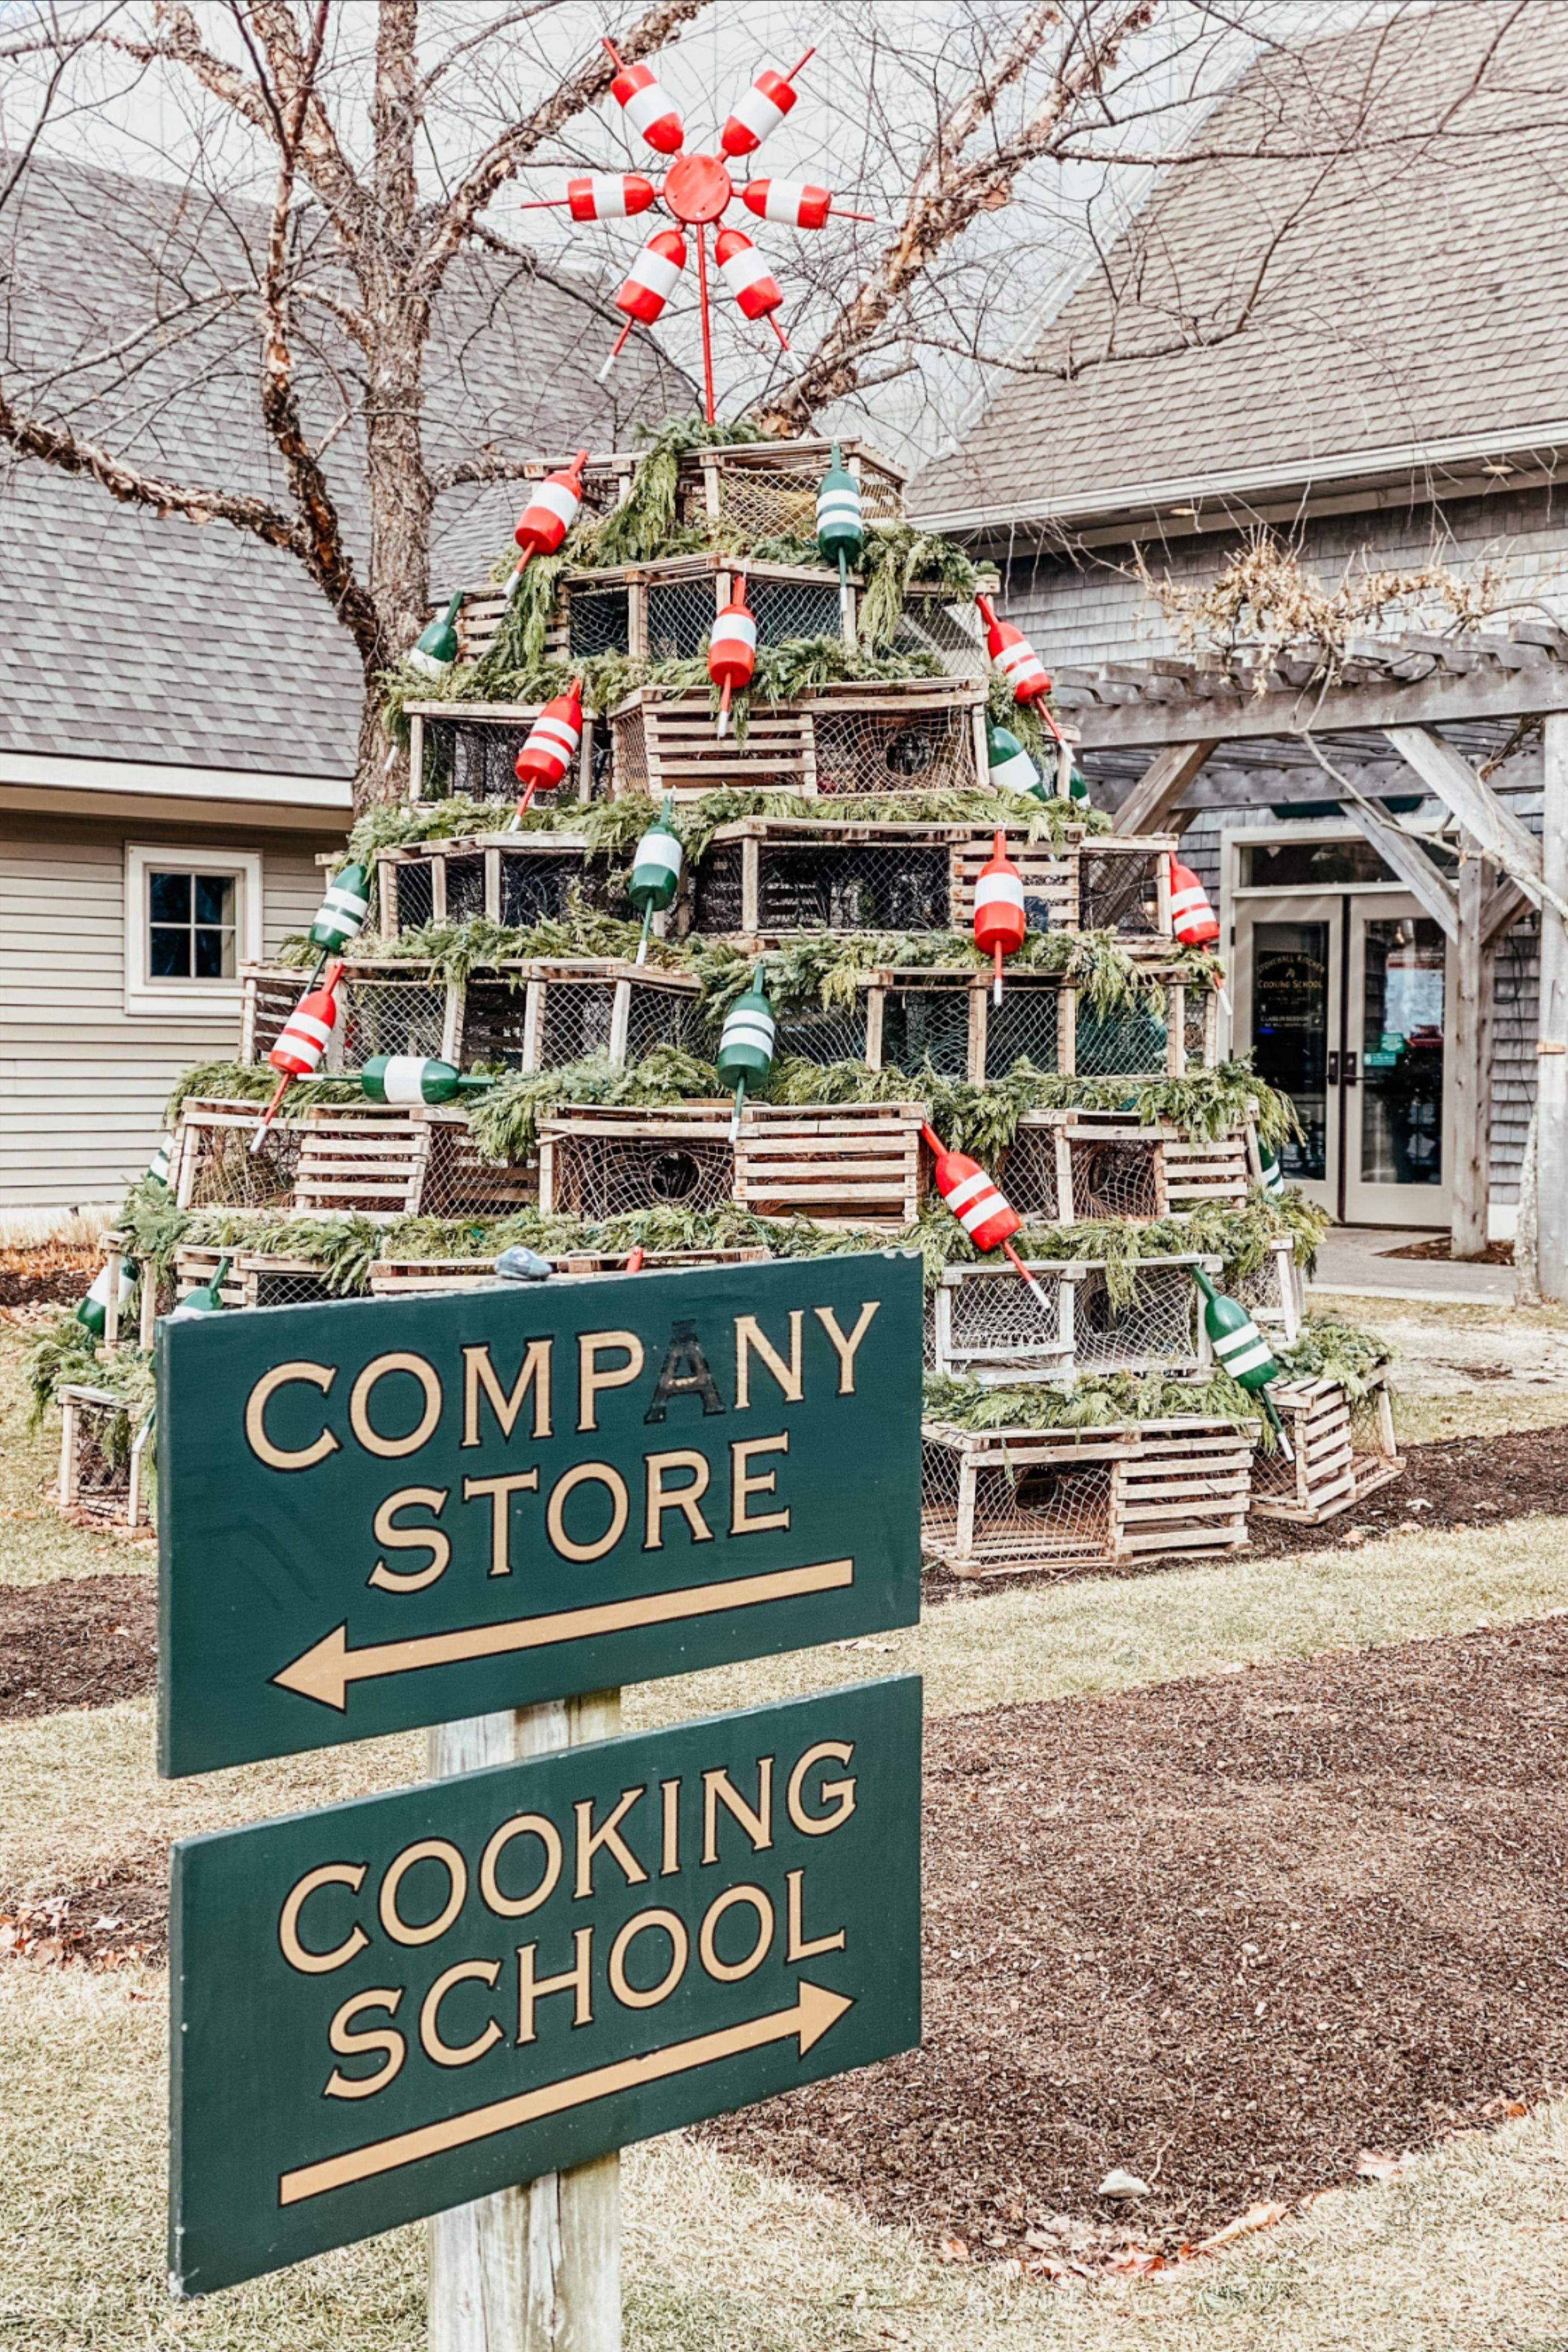 Stonewall Kitchen Is A Leading Specialty Food Producer Headquartered In York Maine I Love Their Food Recipes Christmas Decorations Cozy Decor Inspiration